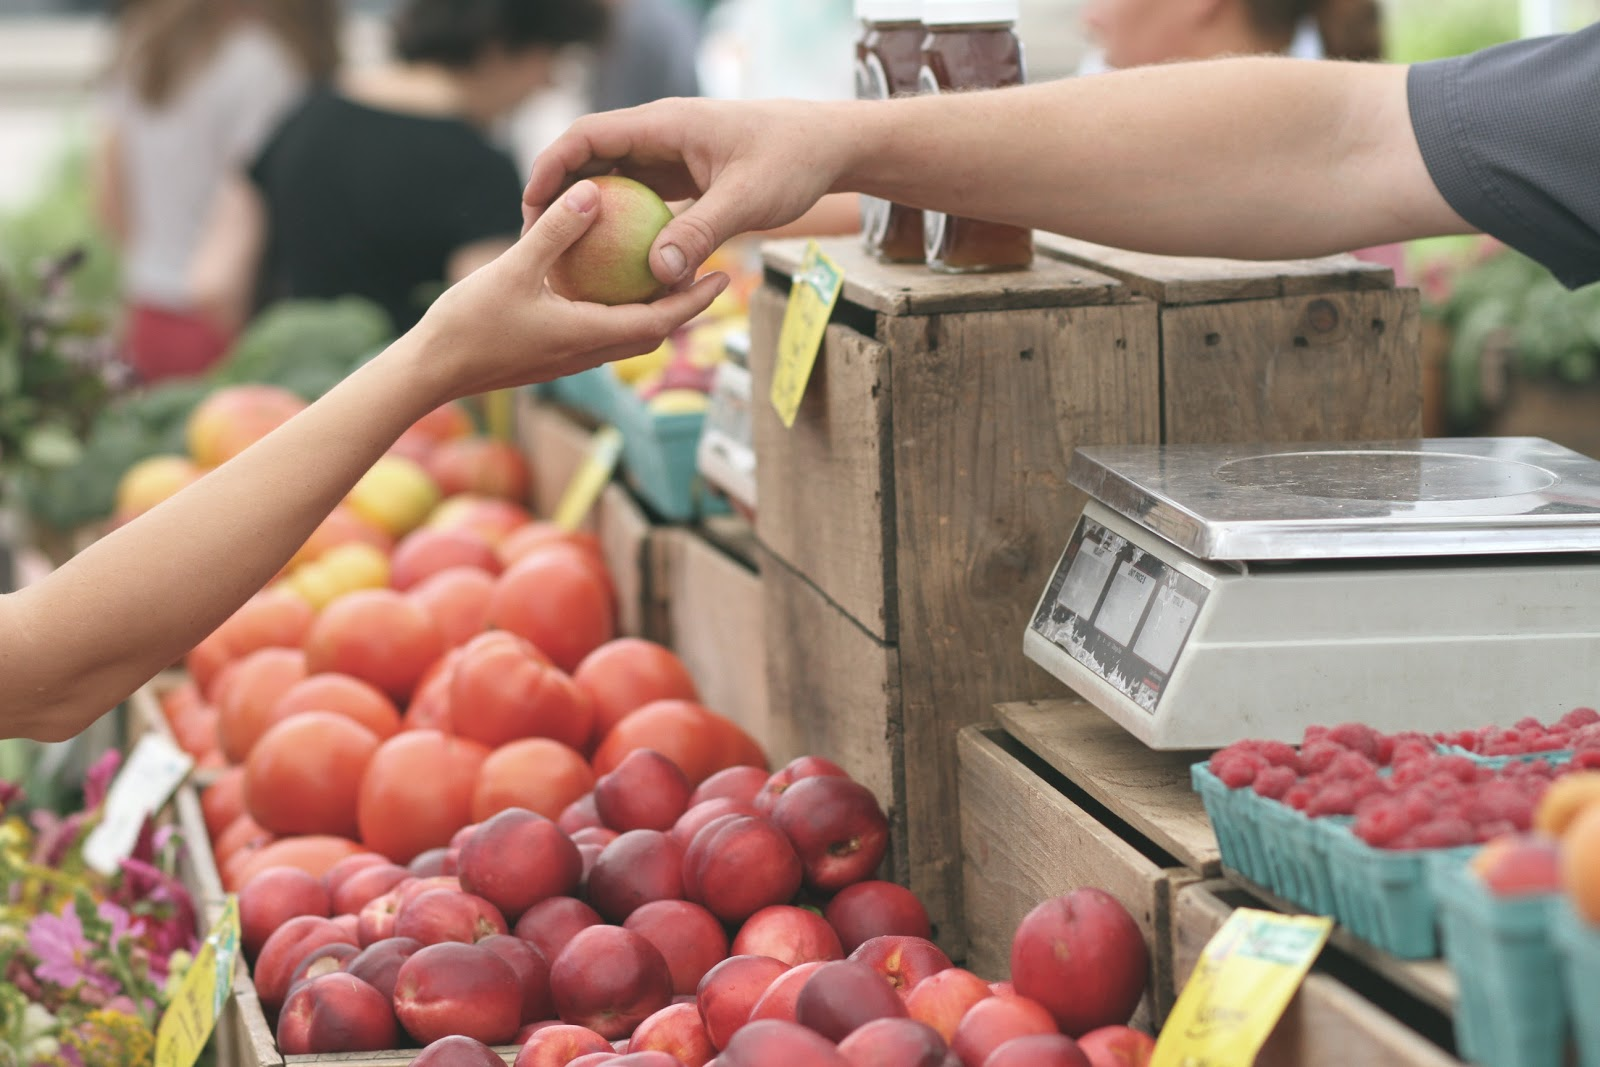 various fruit at market, with one person handing another an apple